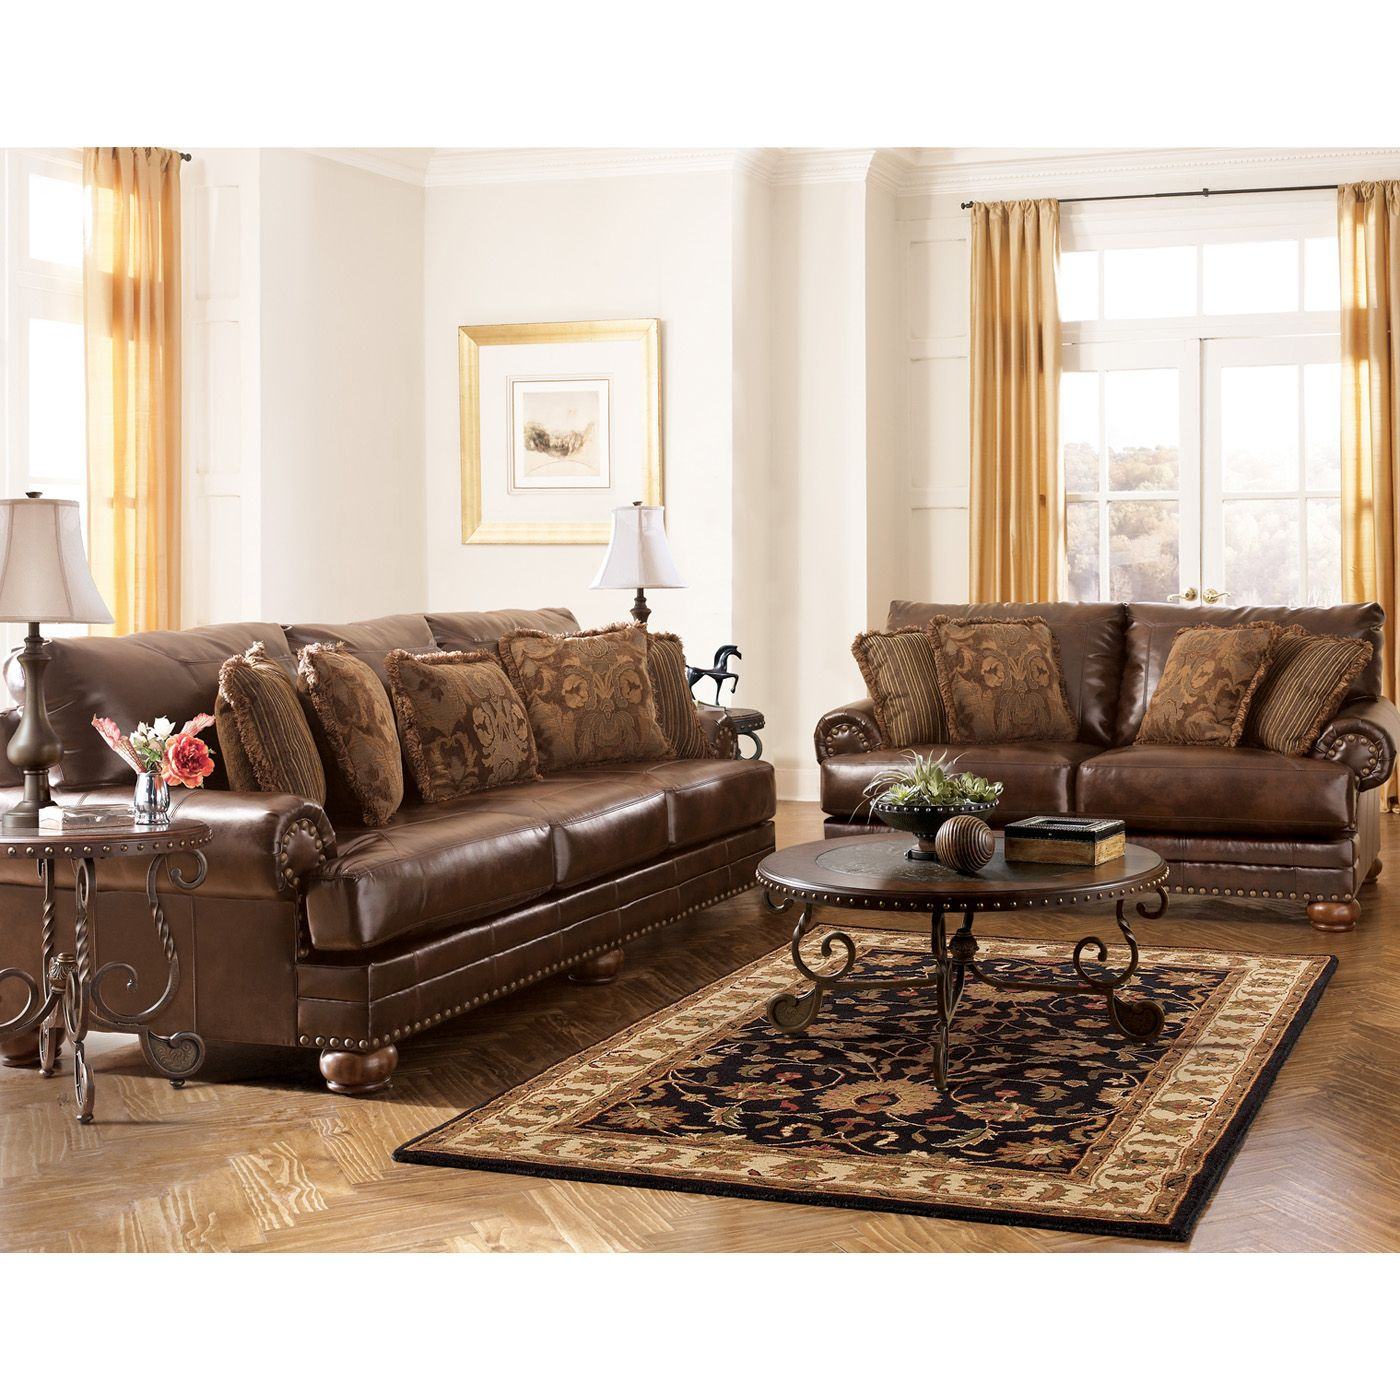 sofa sectional ashley durablend custom made bed singapore signature design by 9920038 atg